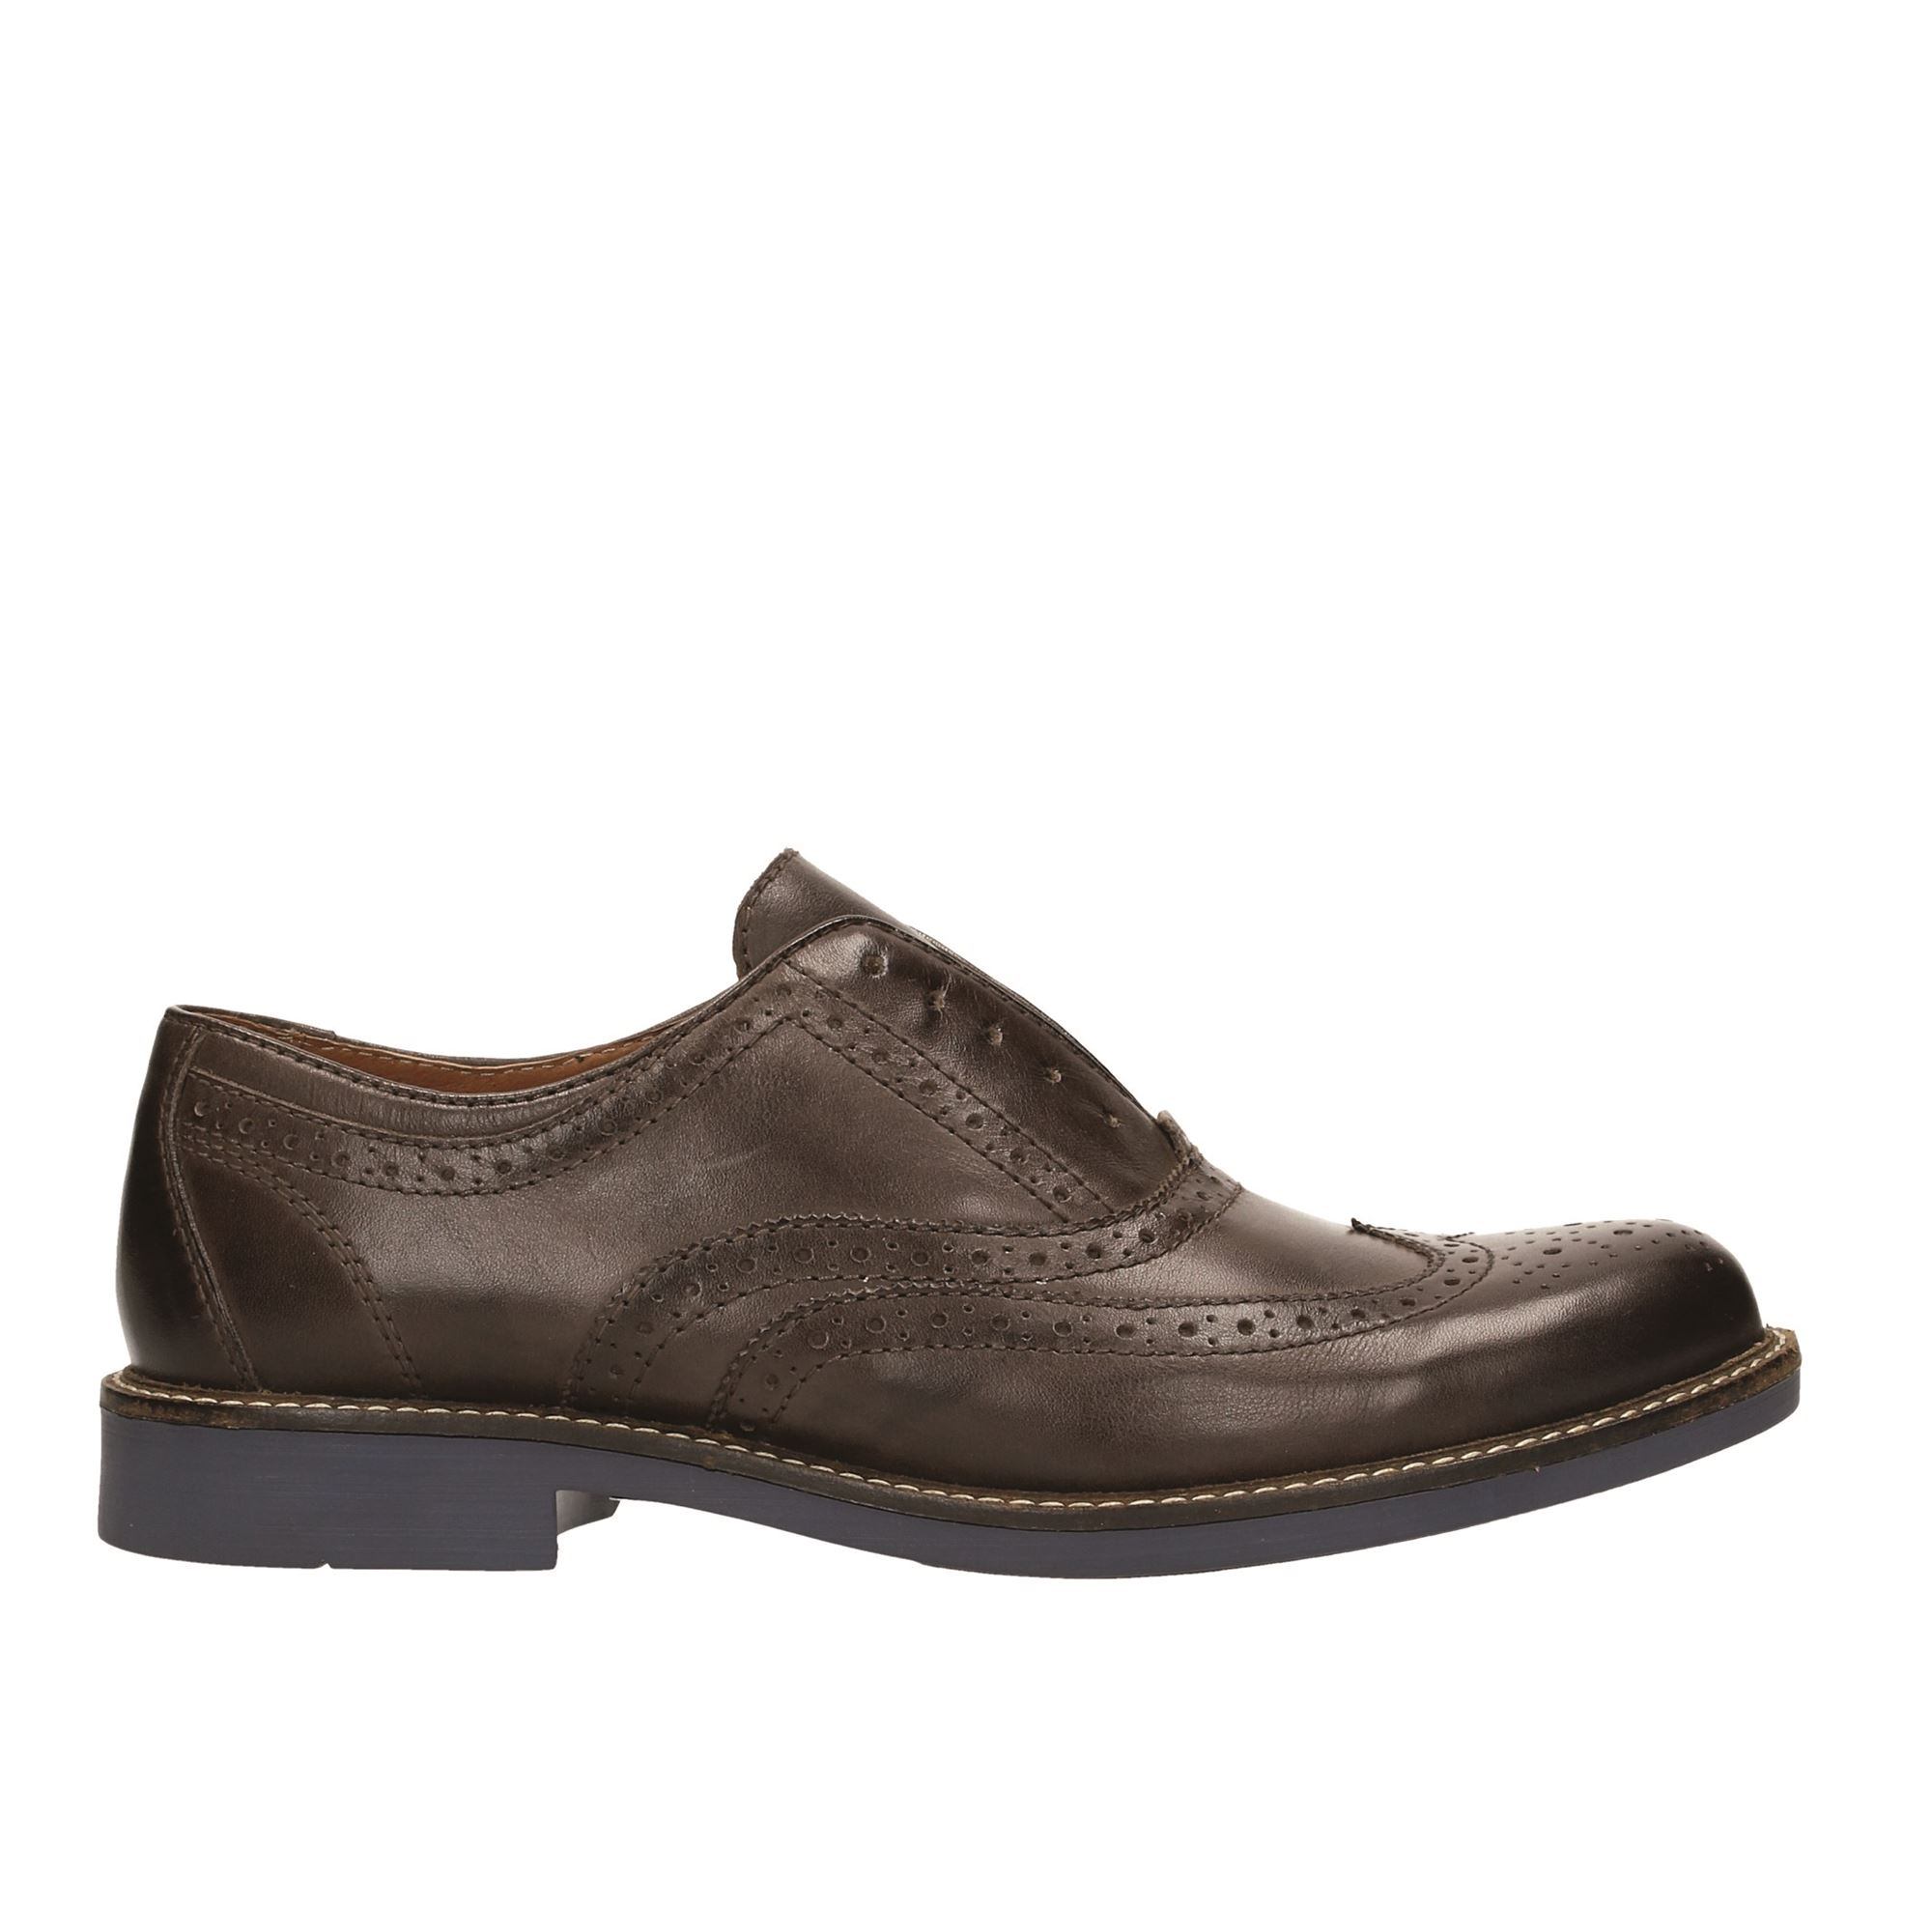 Tata Italia Shoes Man Derby Brown MS-066R72